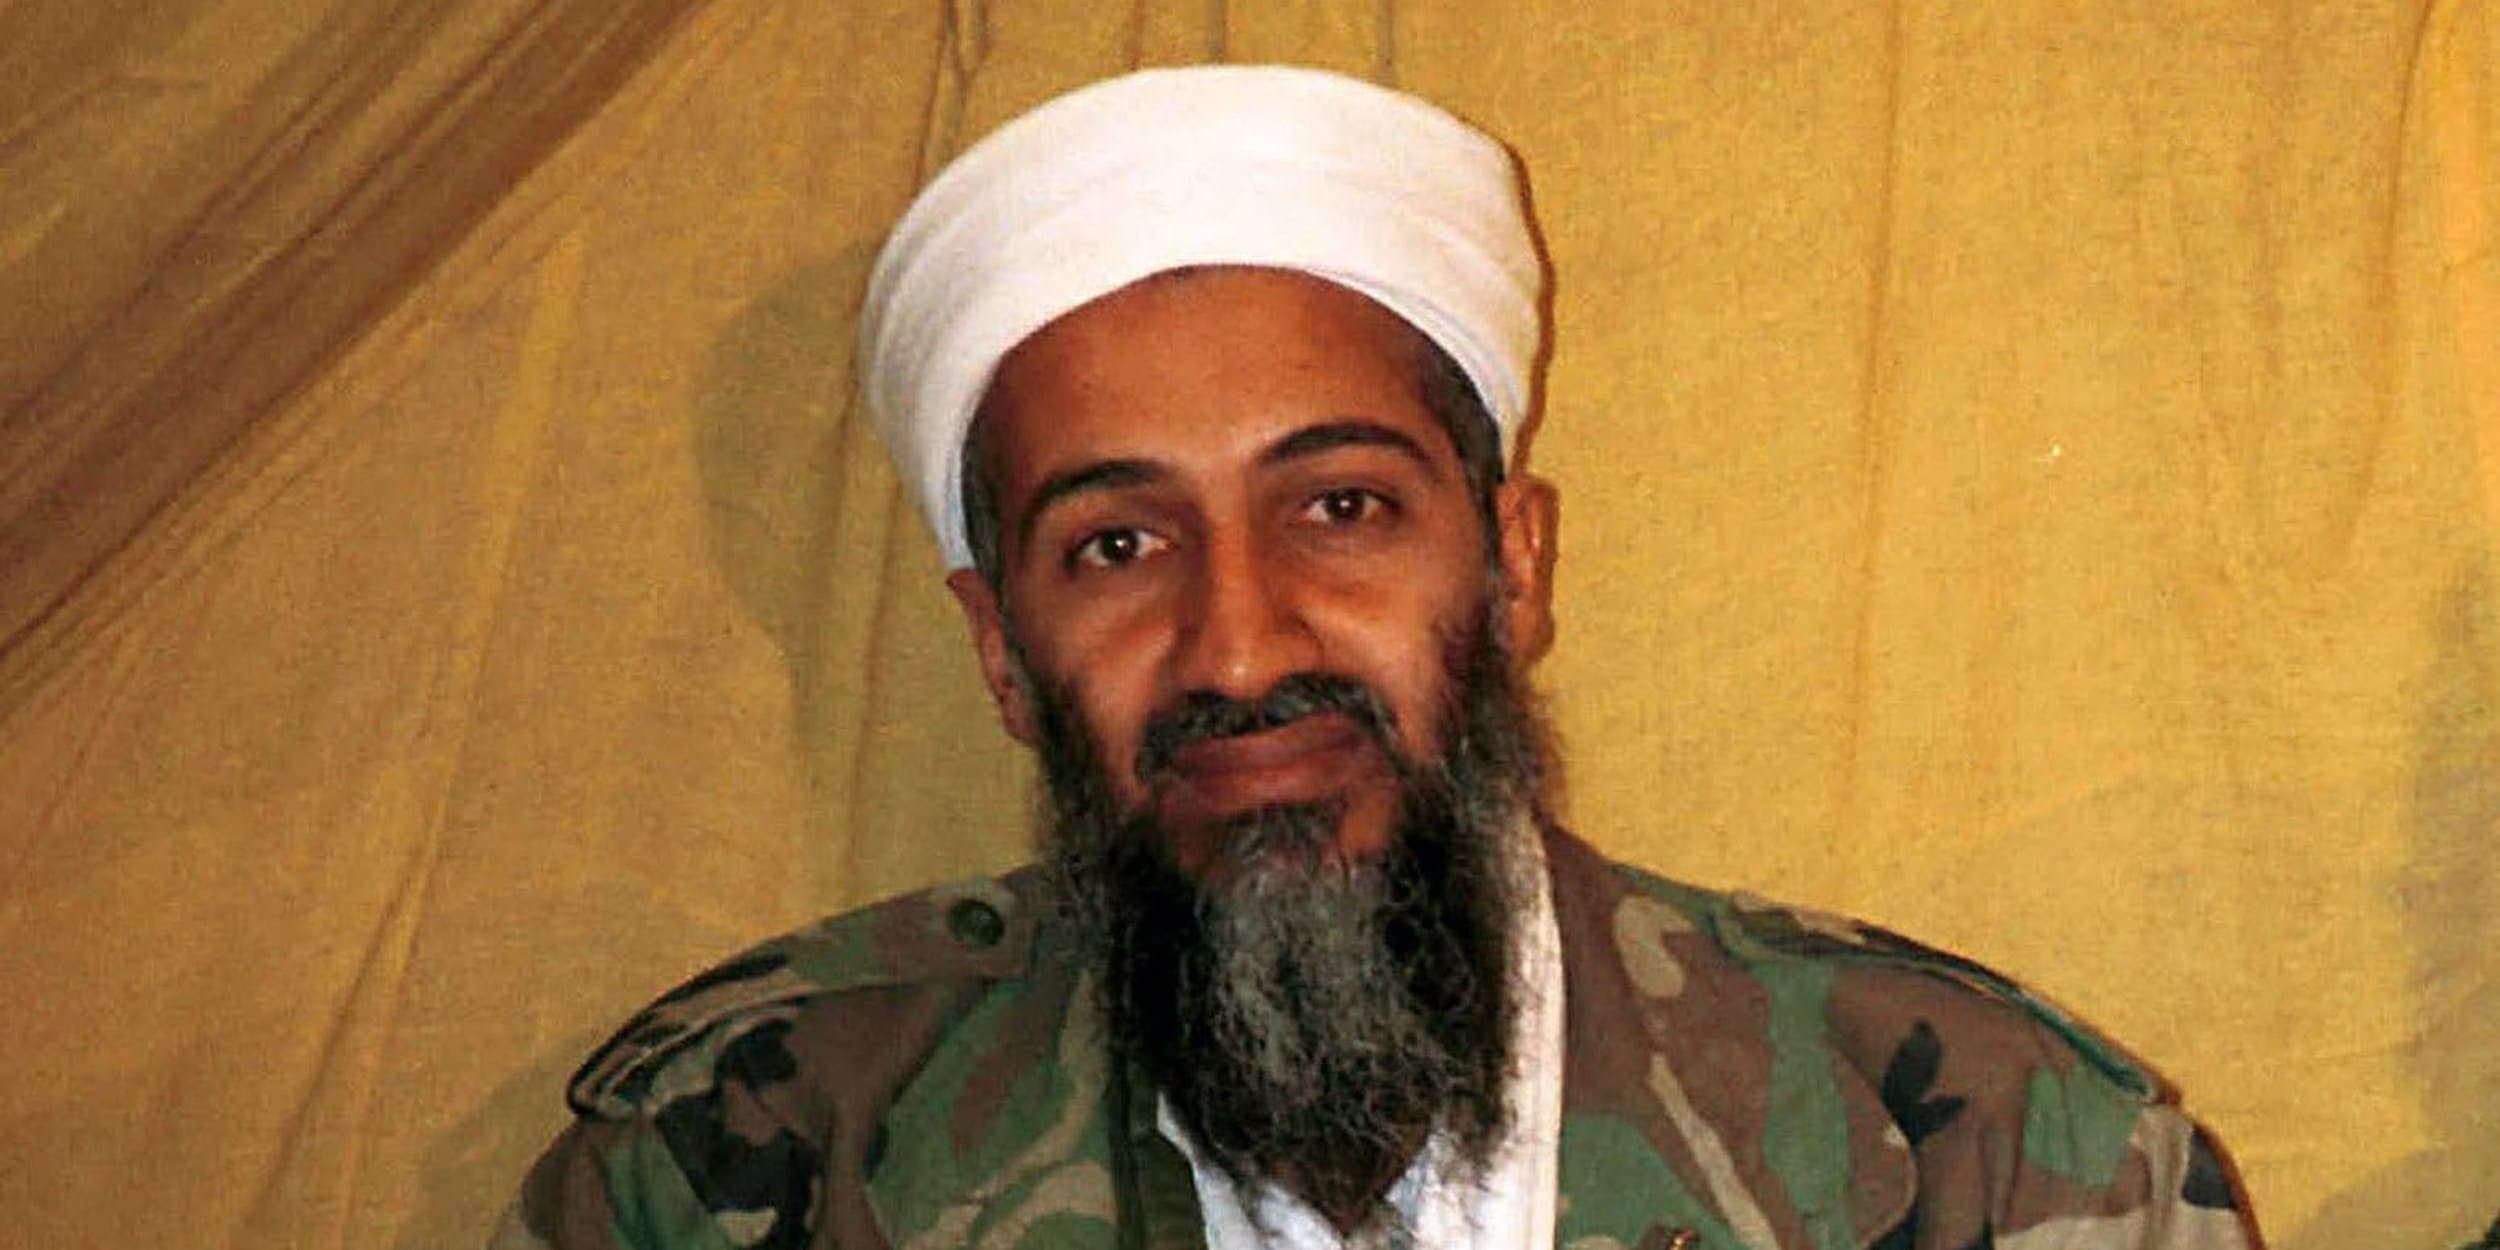 osama bin laden The united states has conducted an operation that killed osama bin laden, the leader of al-qaeda ~ barack obama i determined that we had enough intelligence to take action, and authorized an operation to get osama bin laden and bring him to justice ~ barack obama.